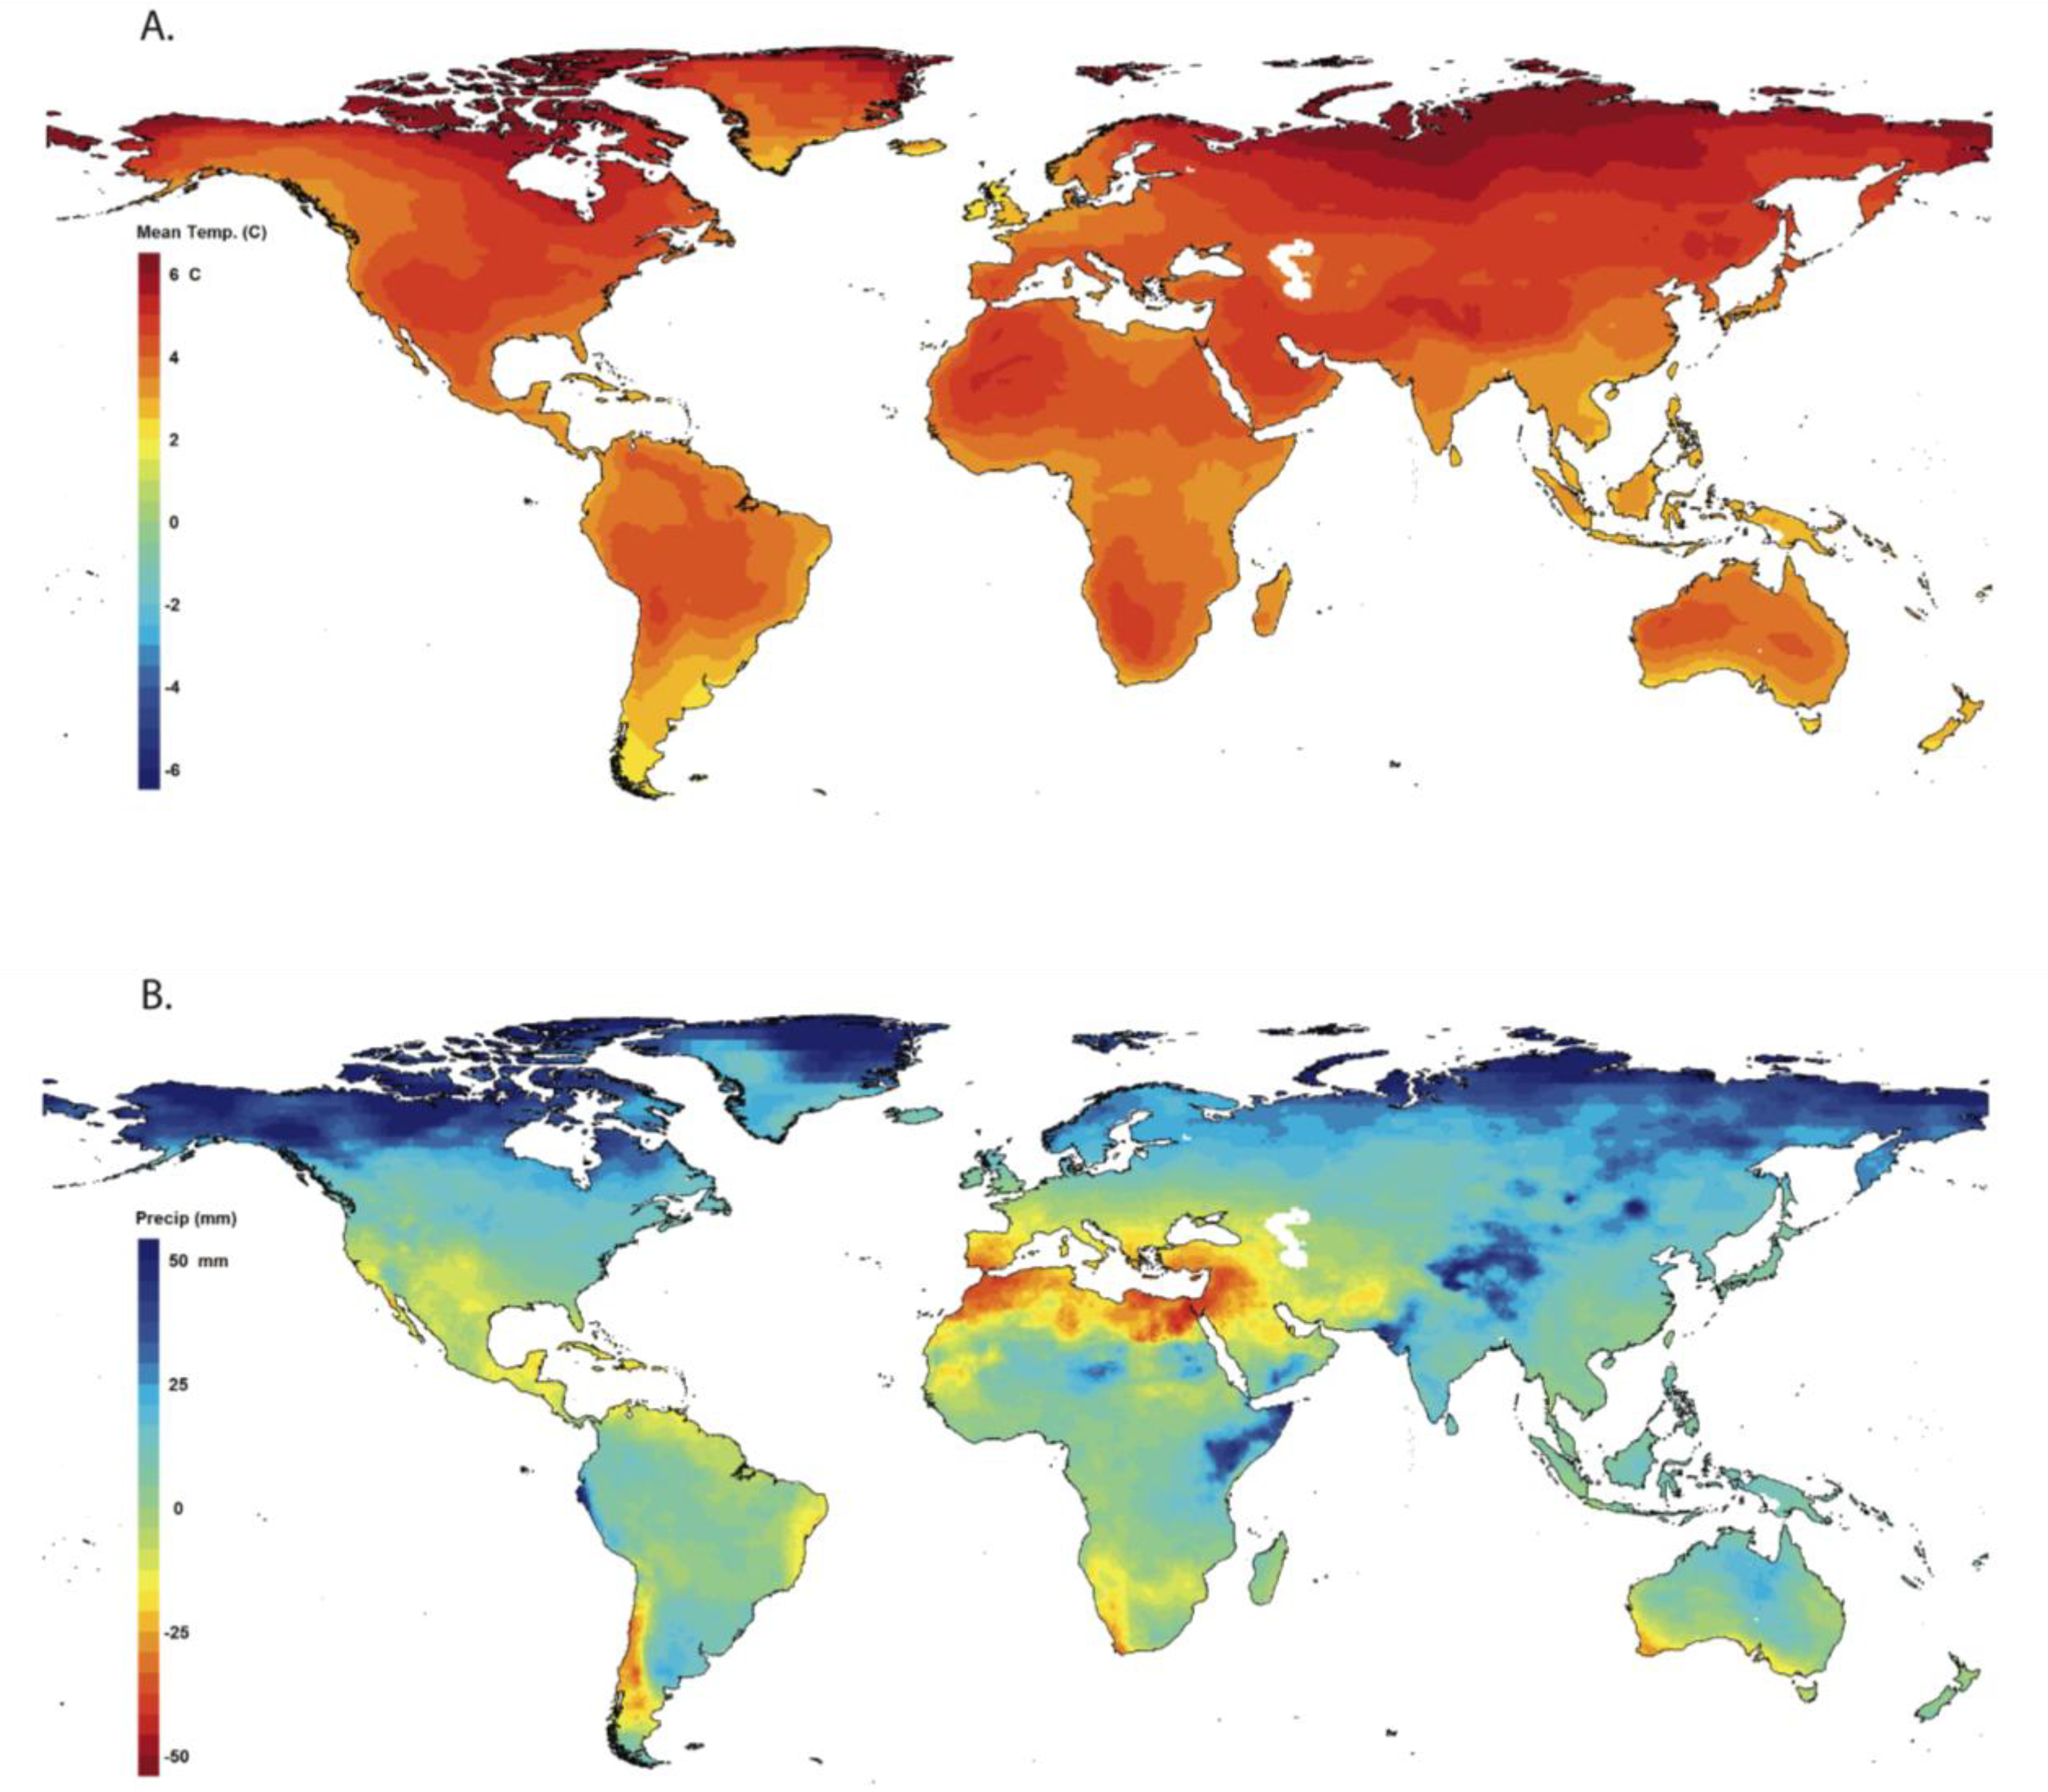 Diversity Free FullText Direct And Indirect Effects Of - Amphibian loss us map